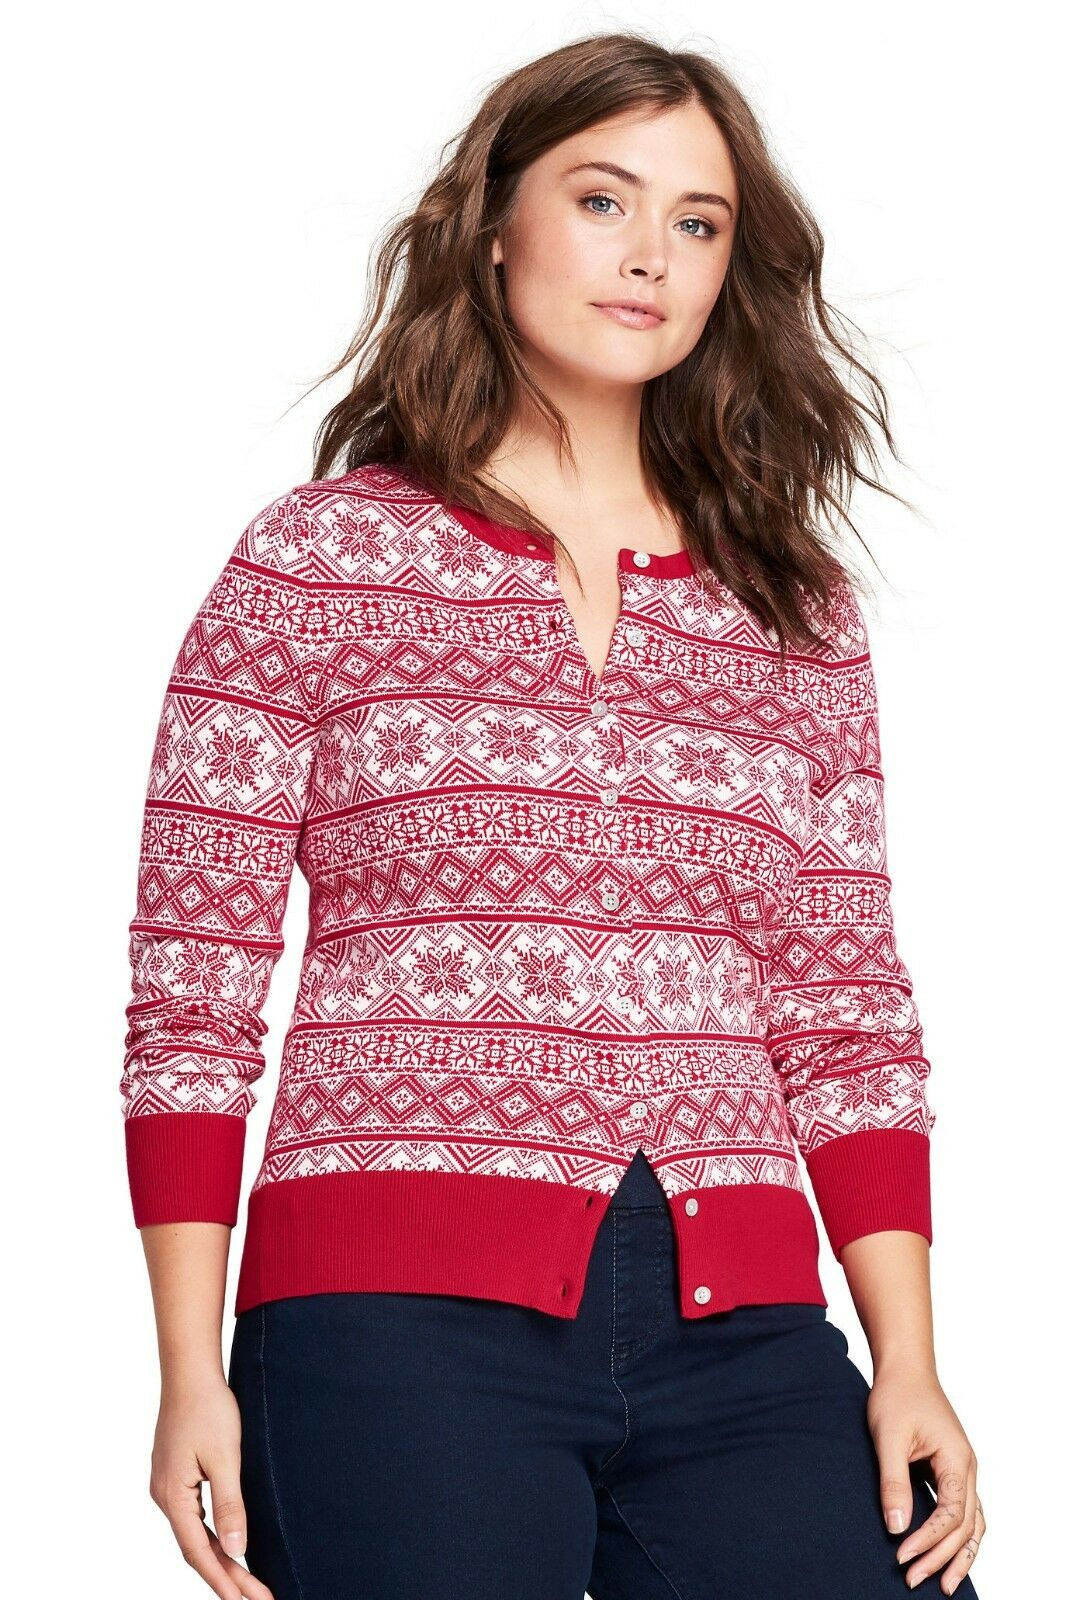 LANDS' END Plus Size 1X Red Fair Isle Supima Cotton Cardigan Sweater NWT